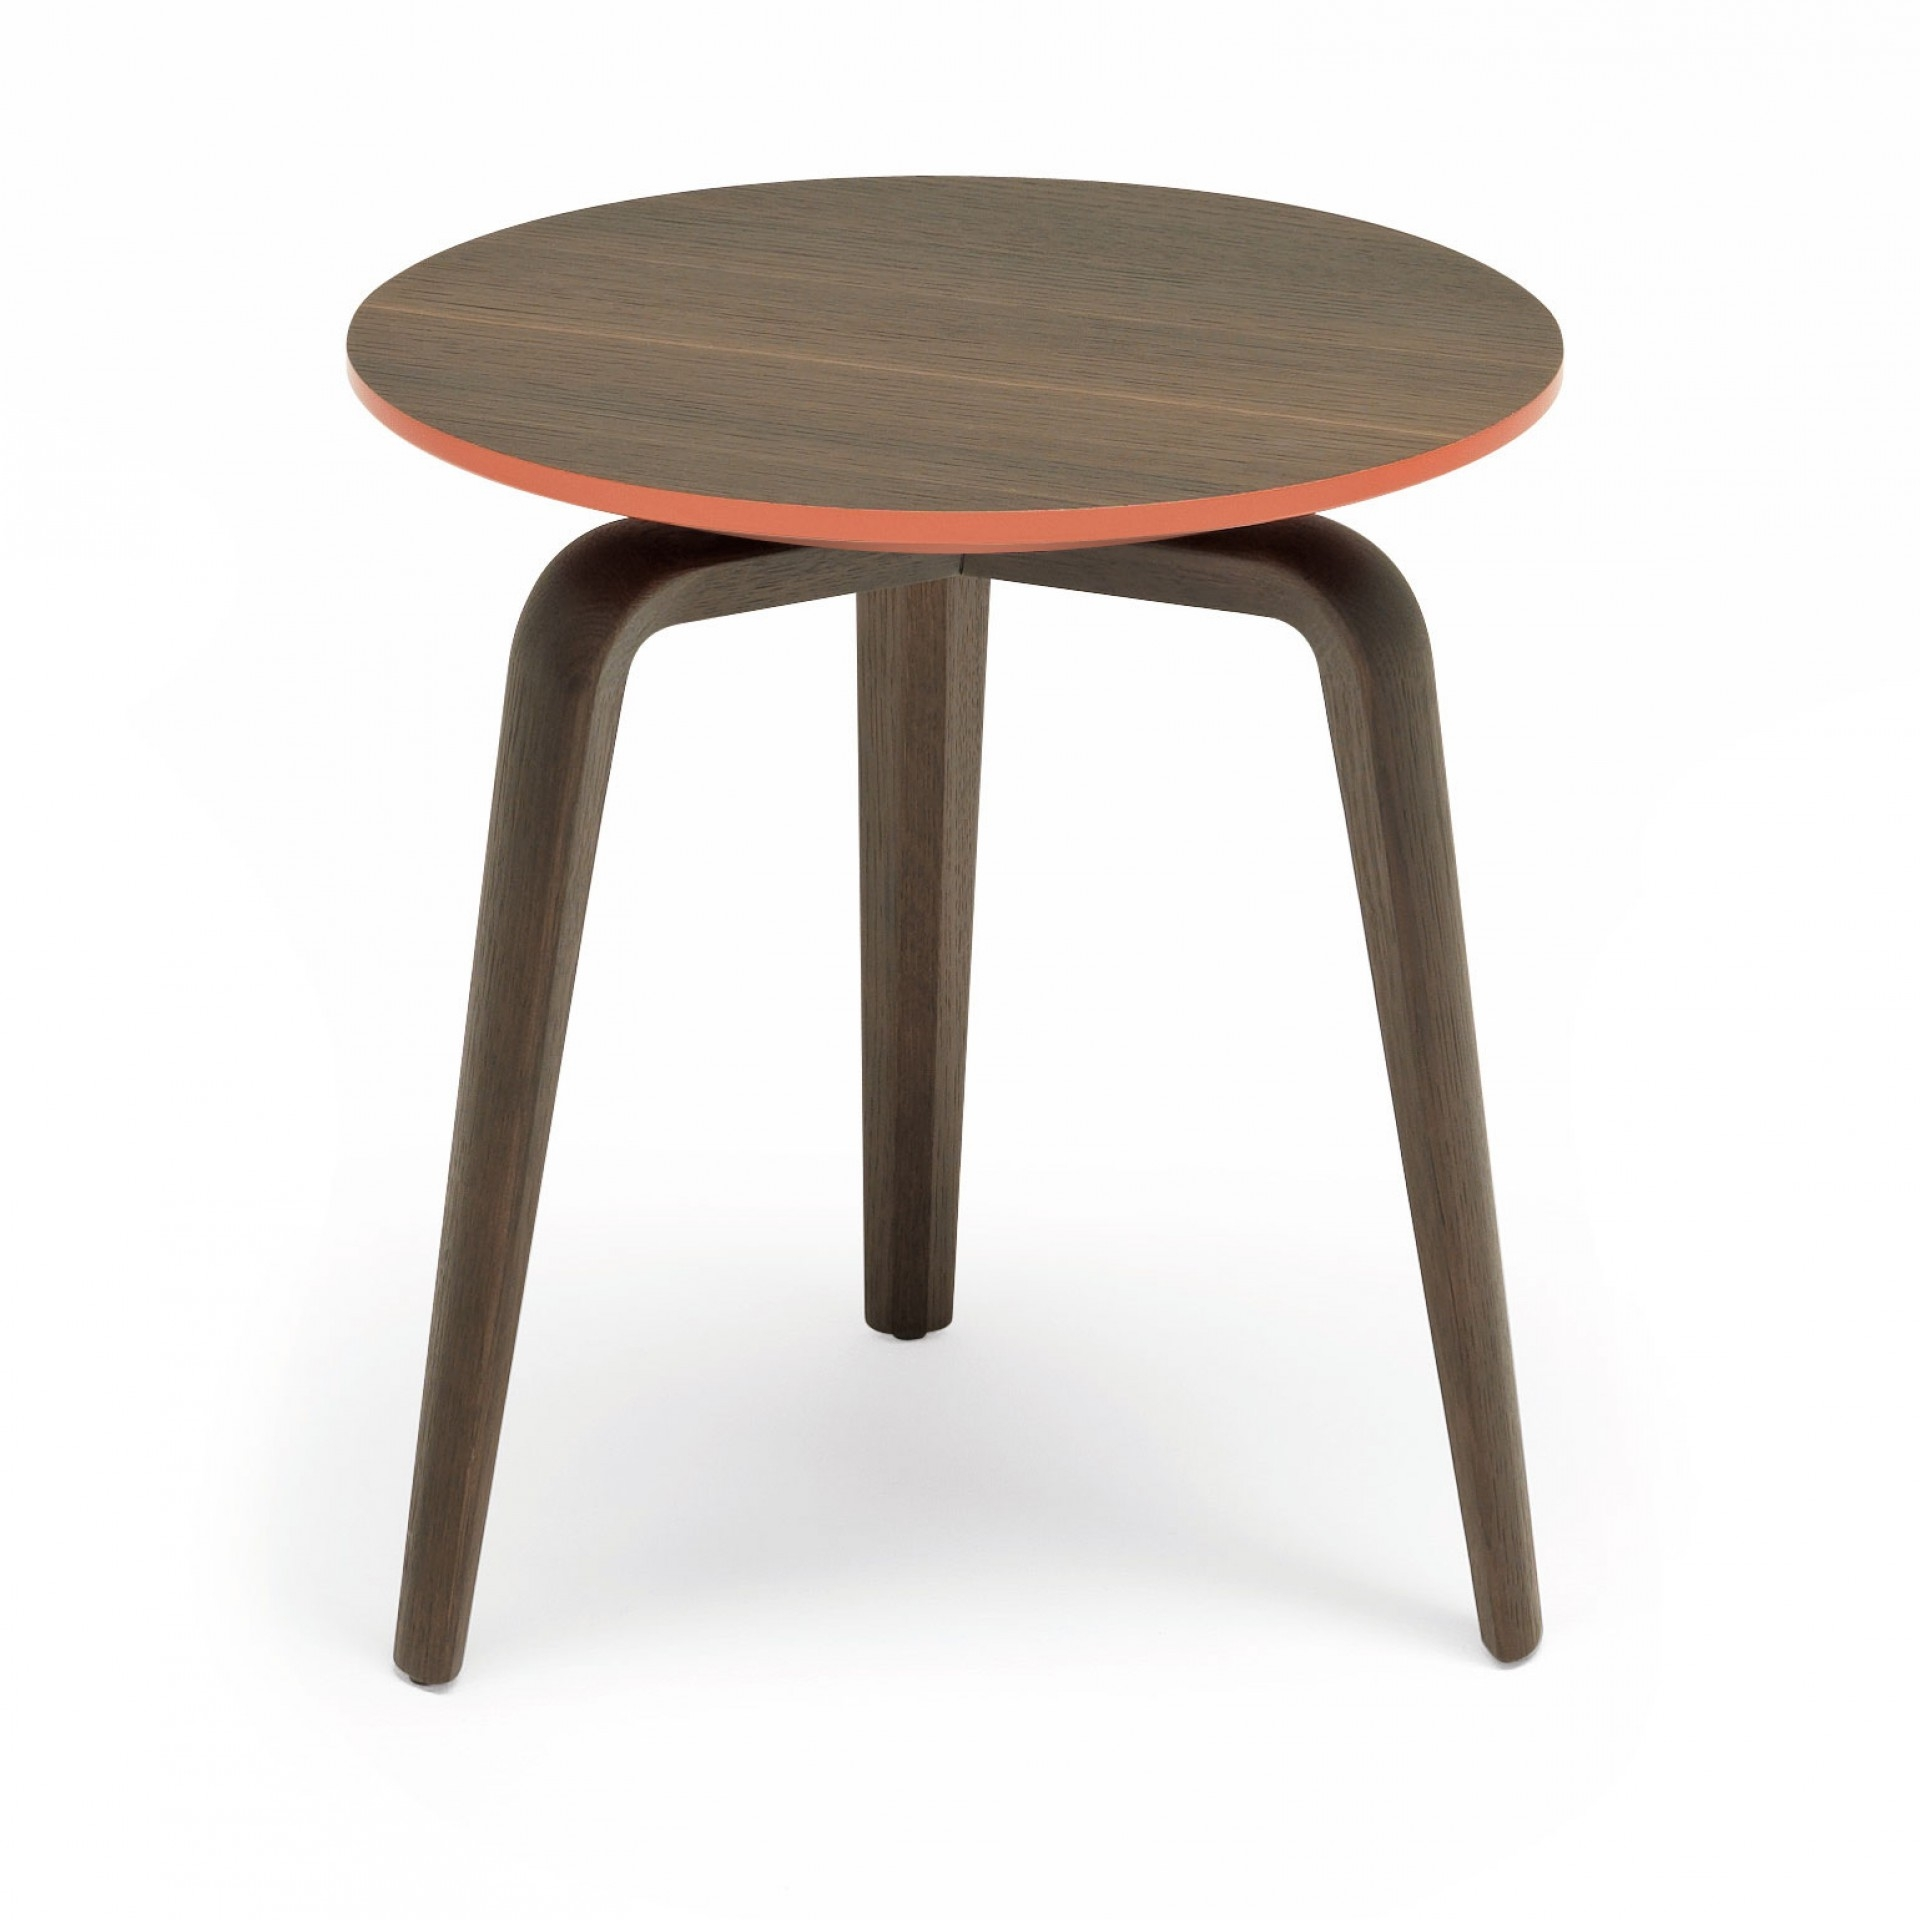 MisuraEmme Gramercy Side Table wood